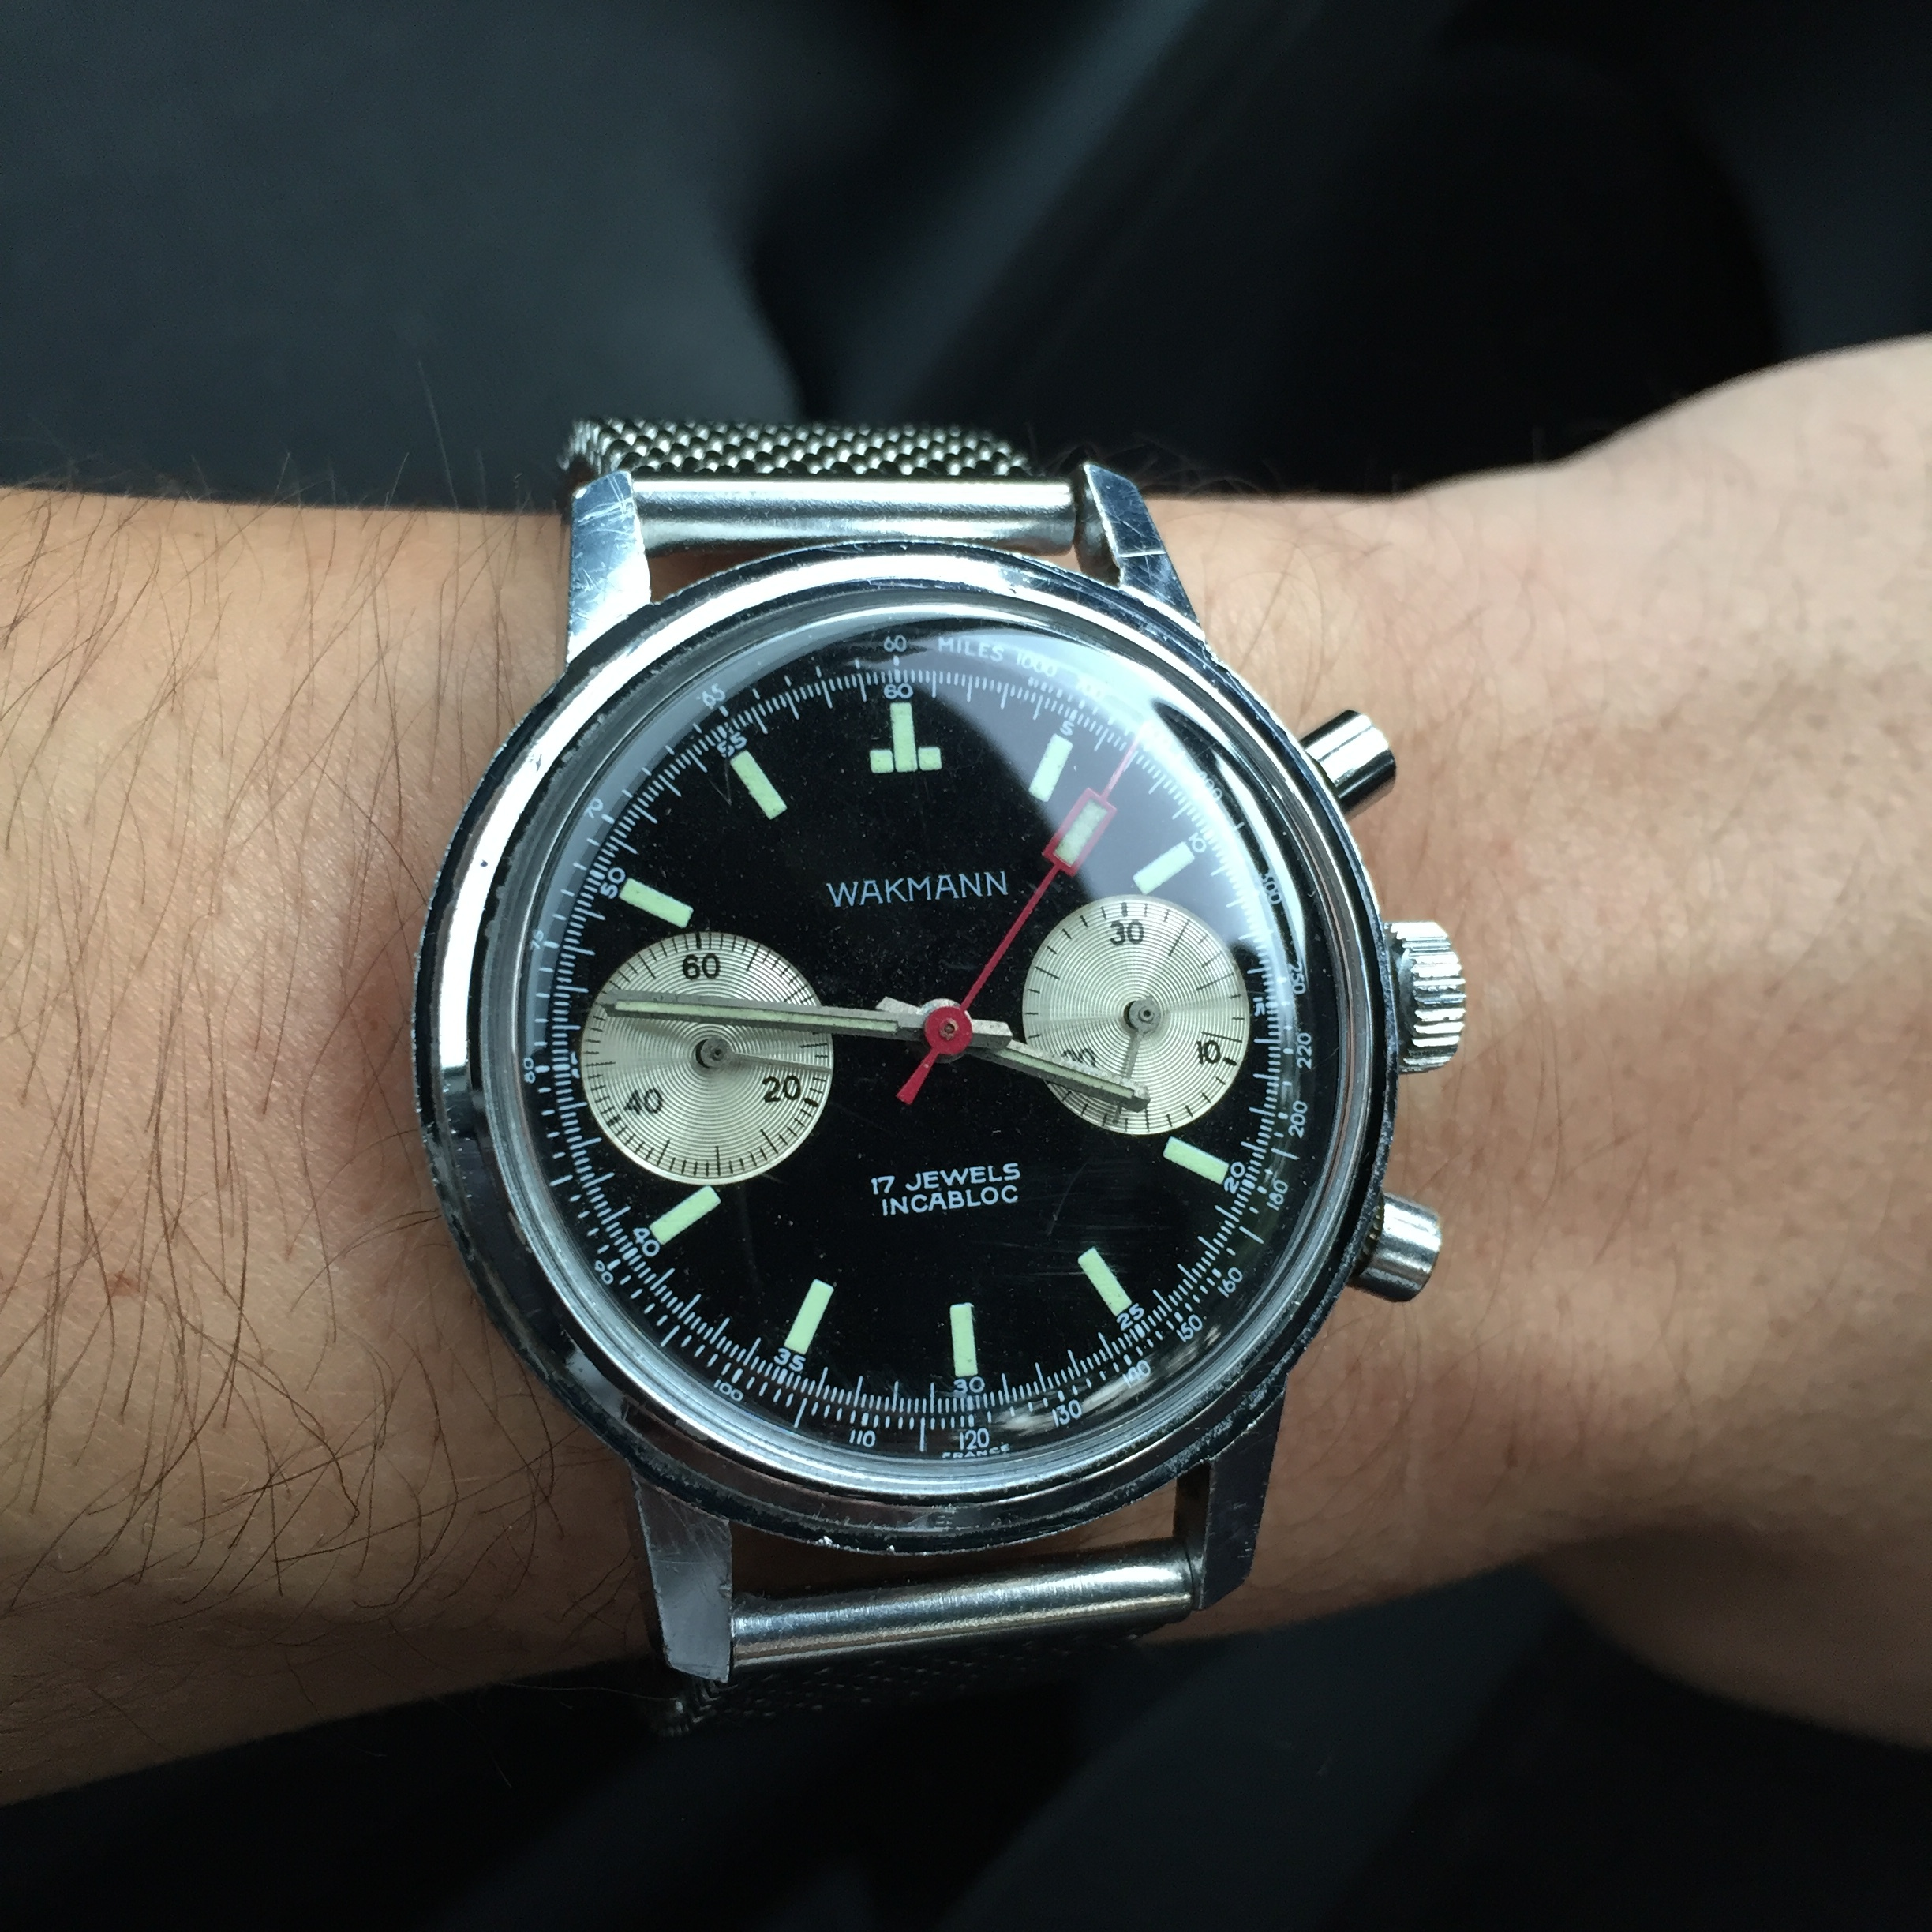 Occasionally, there are watches you can't find exact info on like this Wakmann Chronograph. I was able to find enough info on the company at their watches of the era that I do believe this one is correct and original.